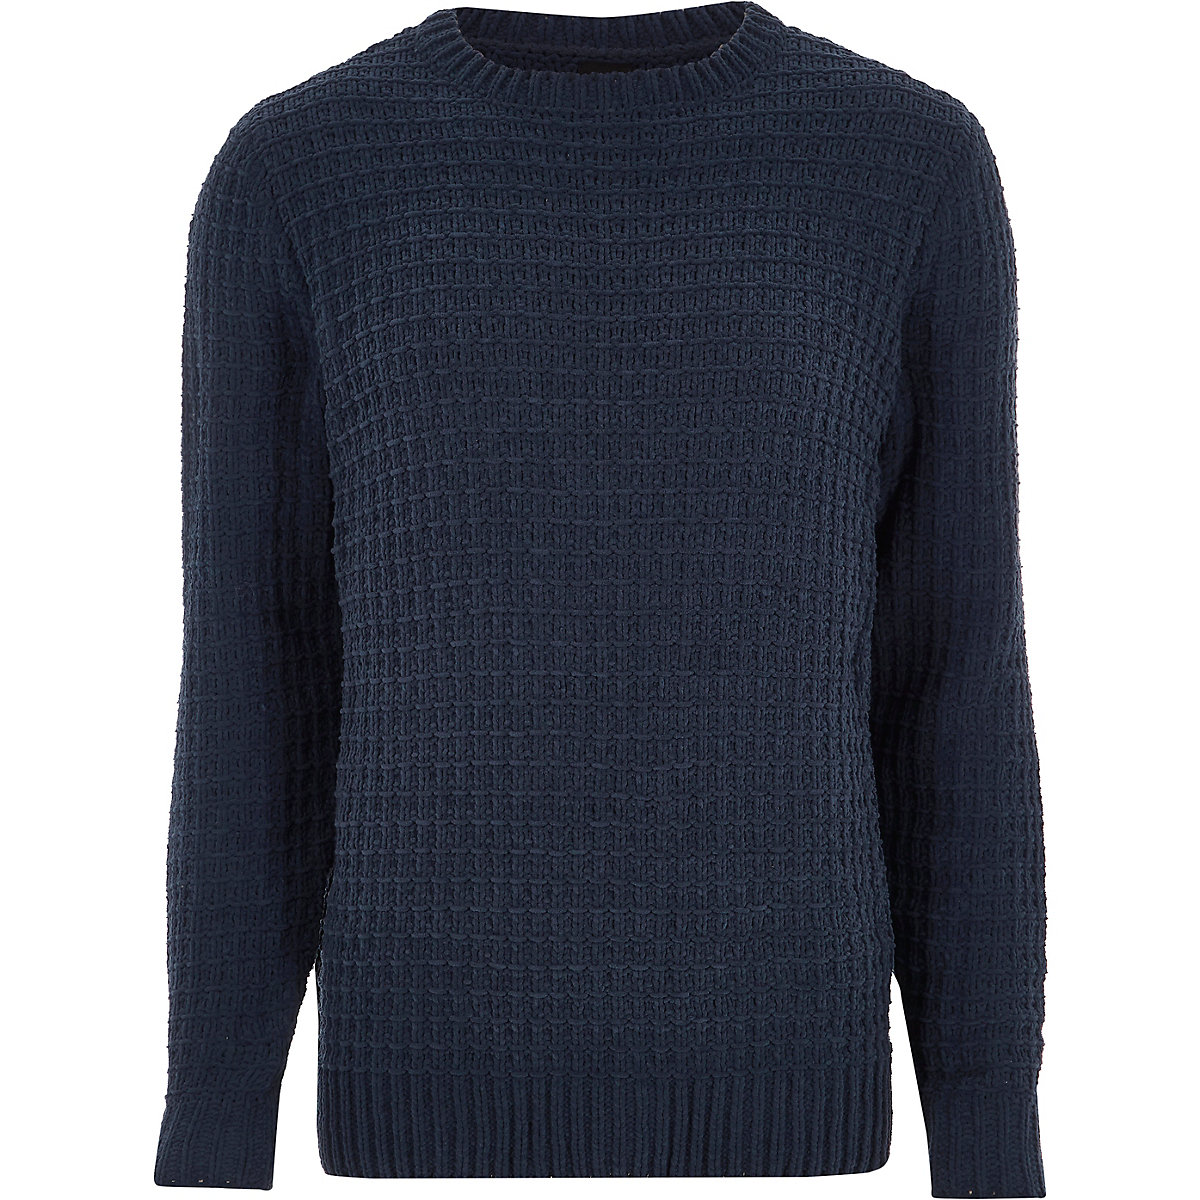 Navy textured chenille knit sweater